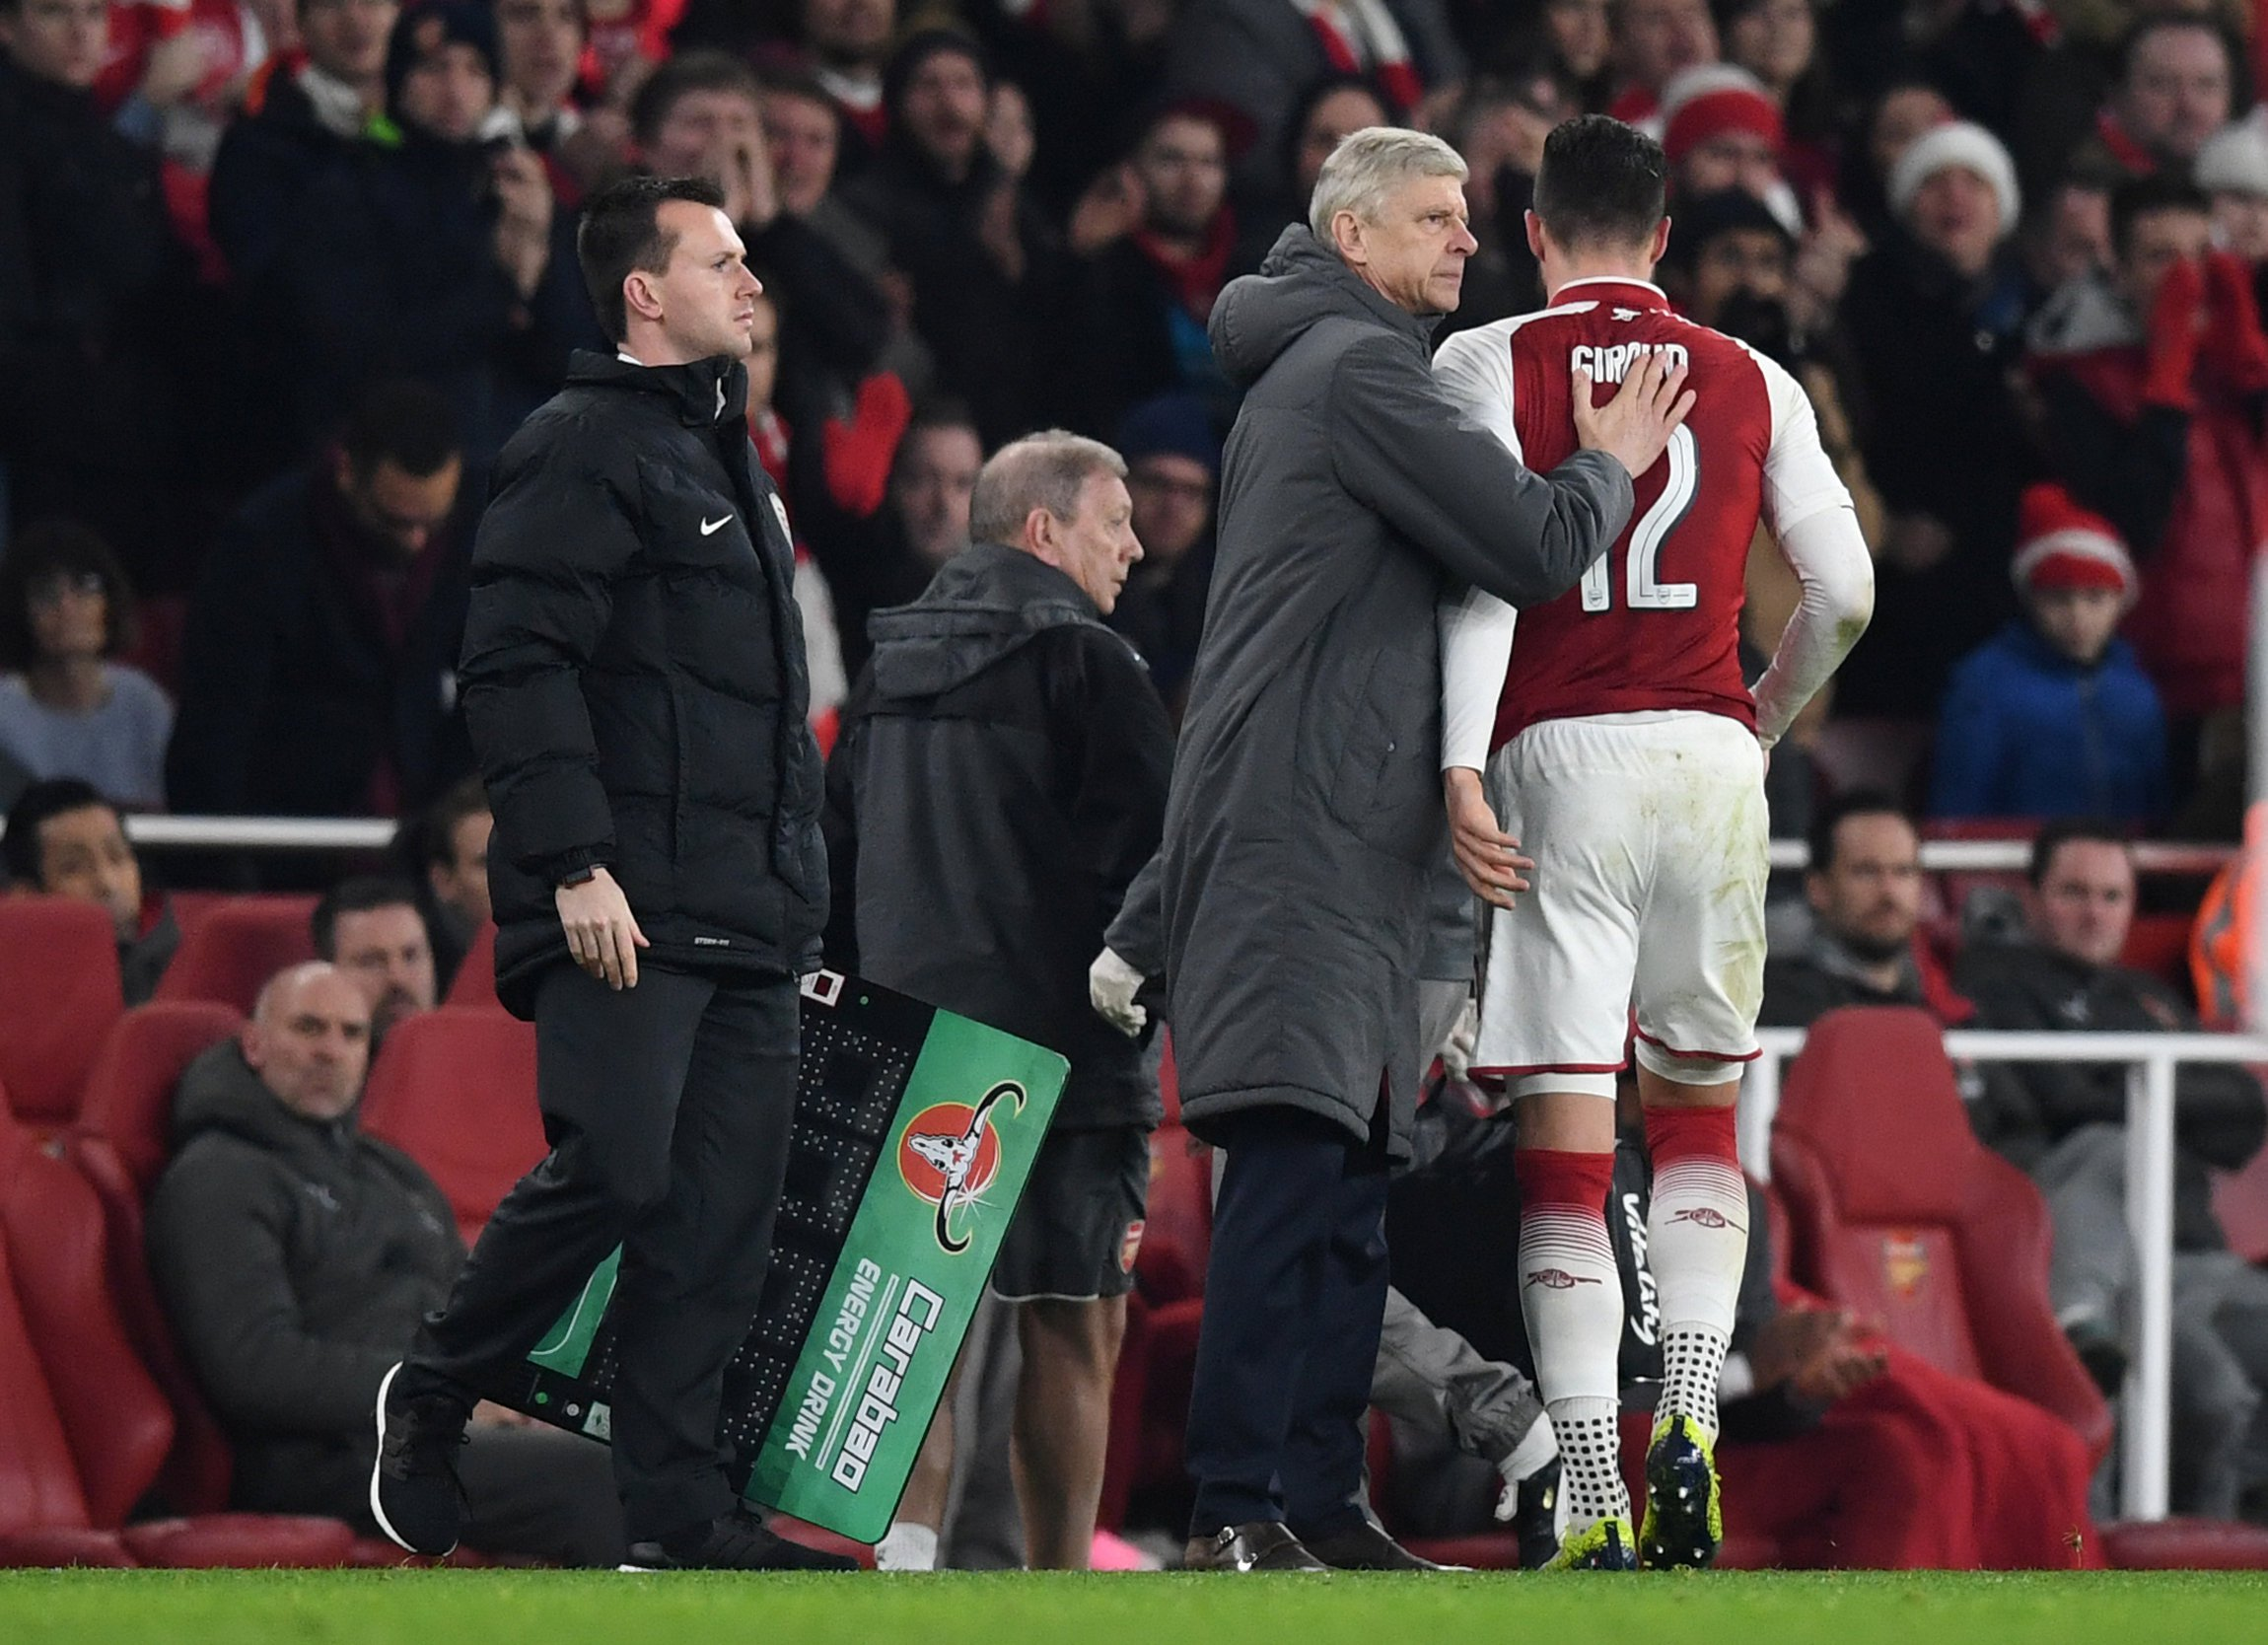 Arsenal duo Olivier Giroud and Nacho Monreal ruled out until mid-January